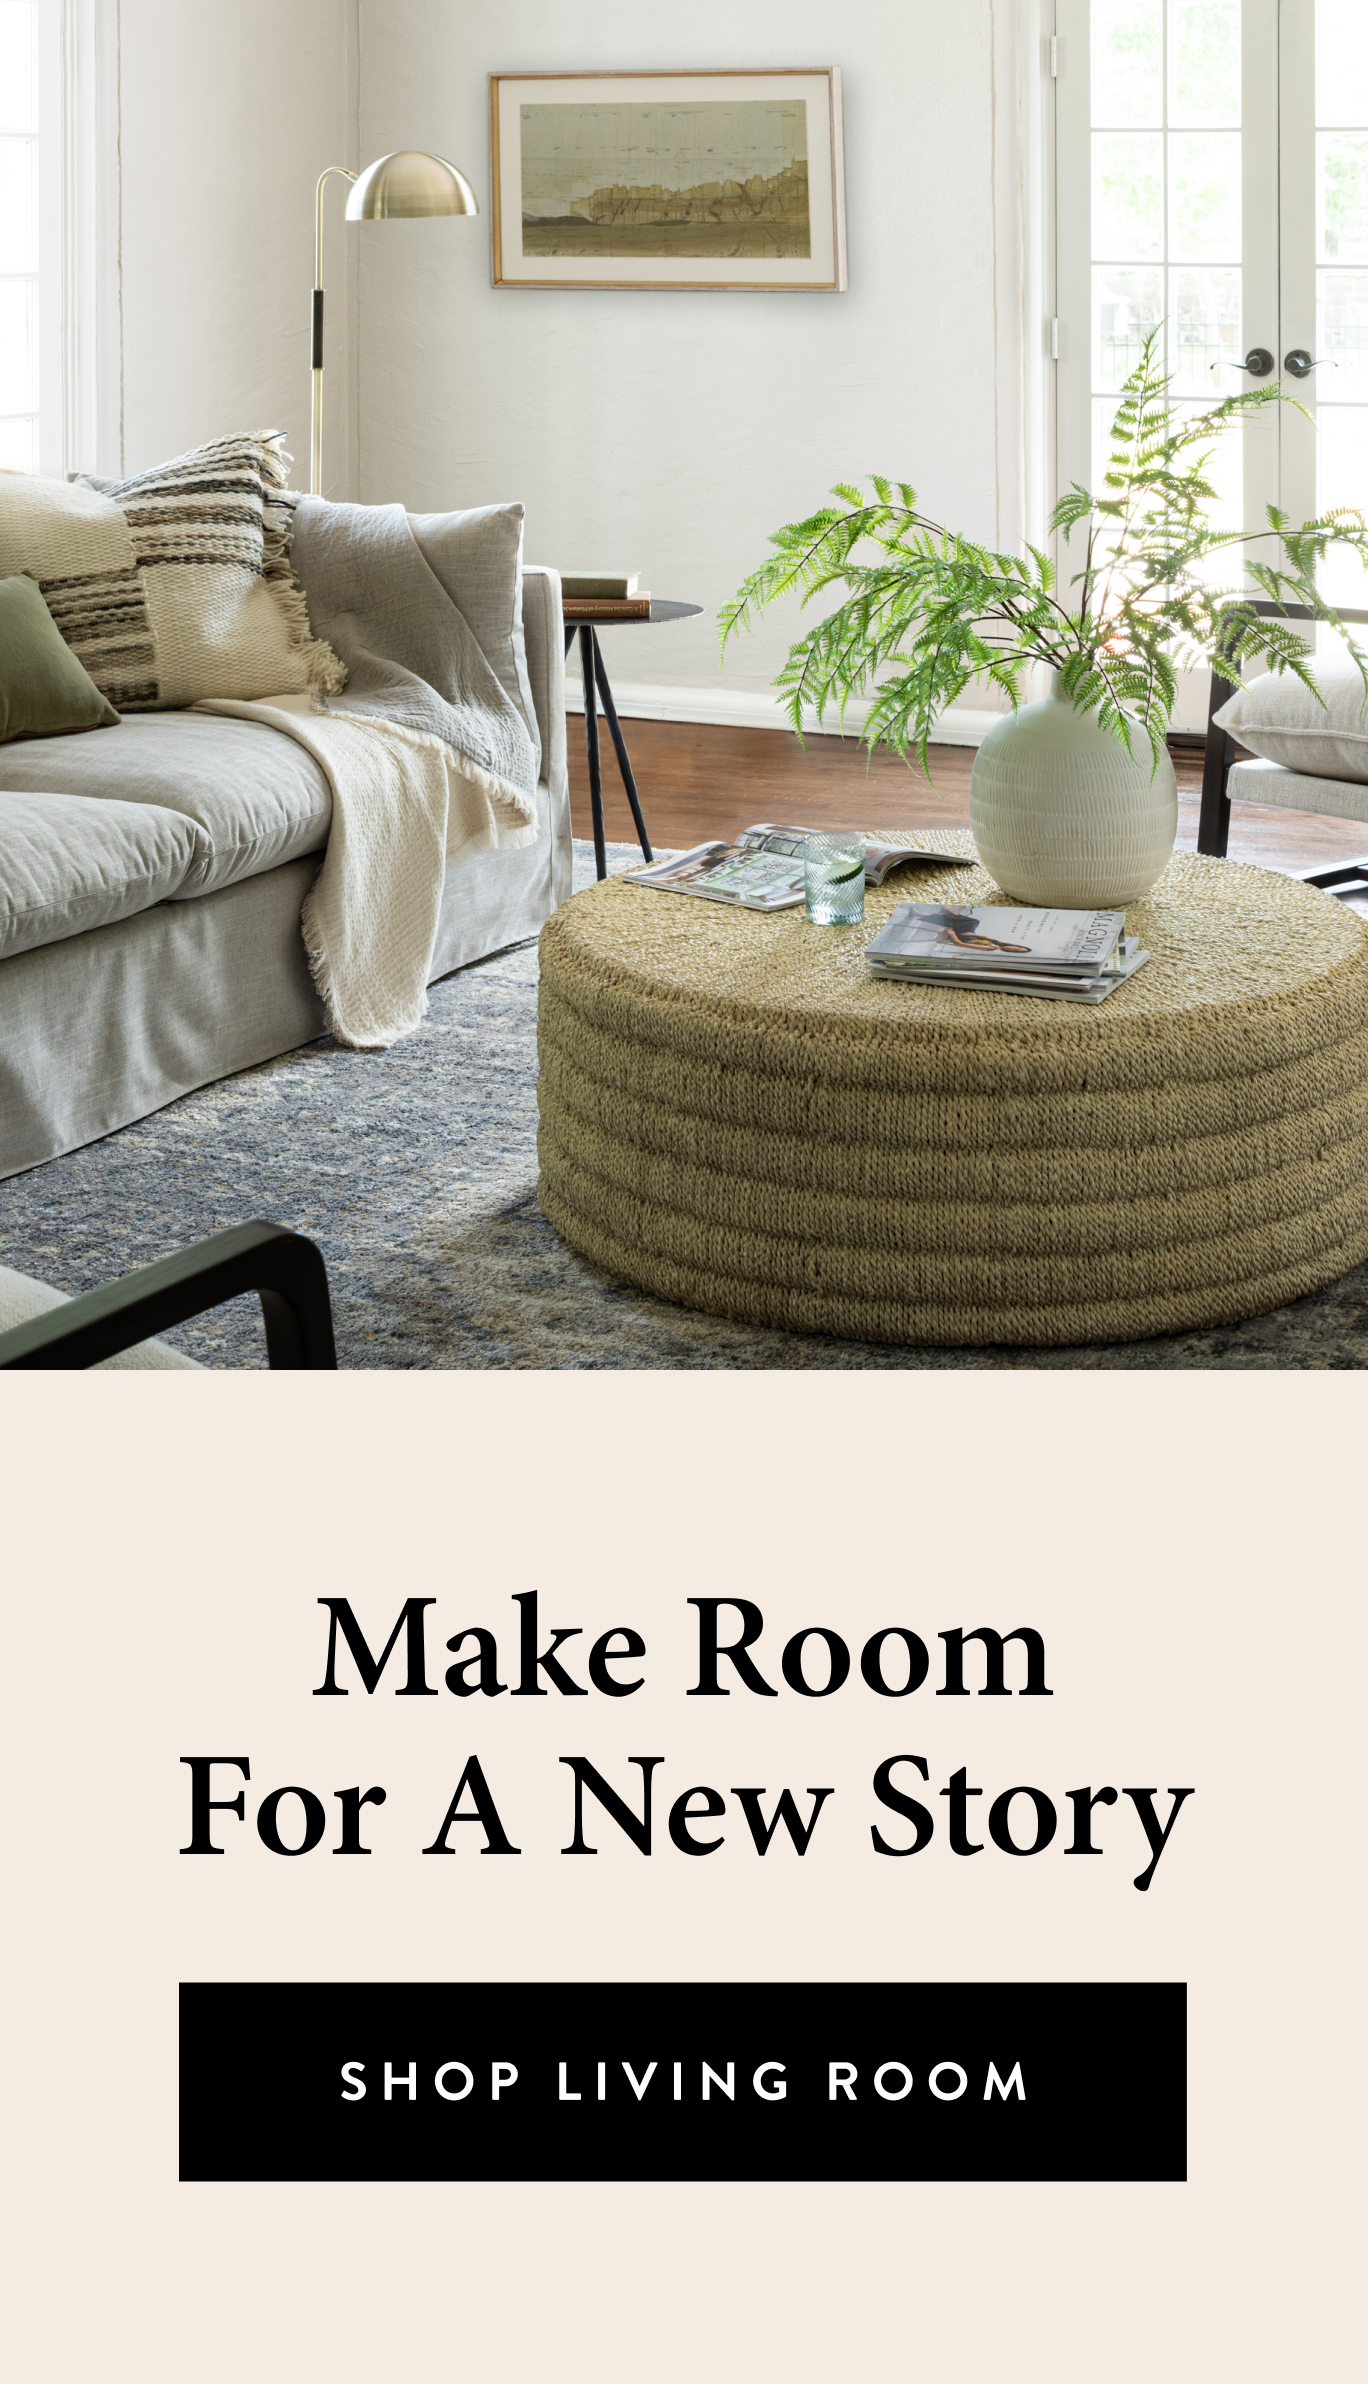 Make room for a new story, shop now!